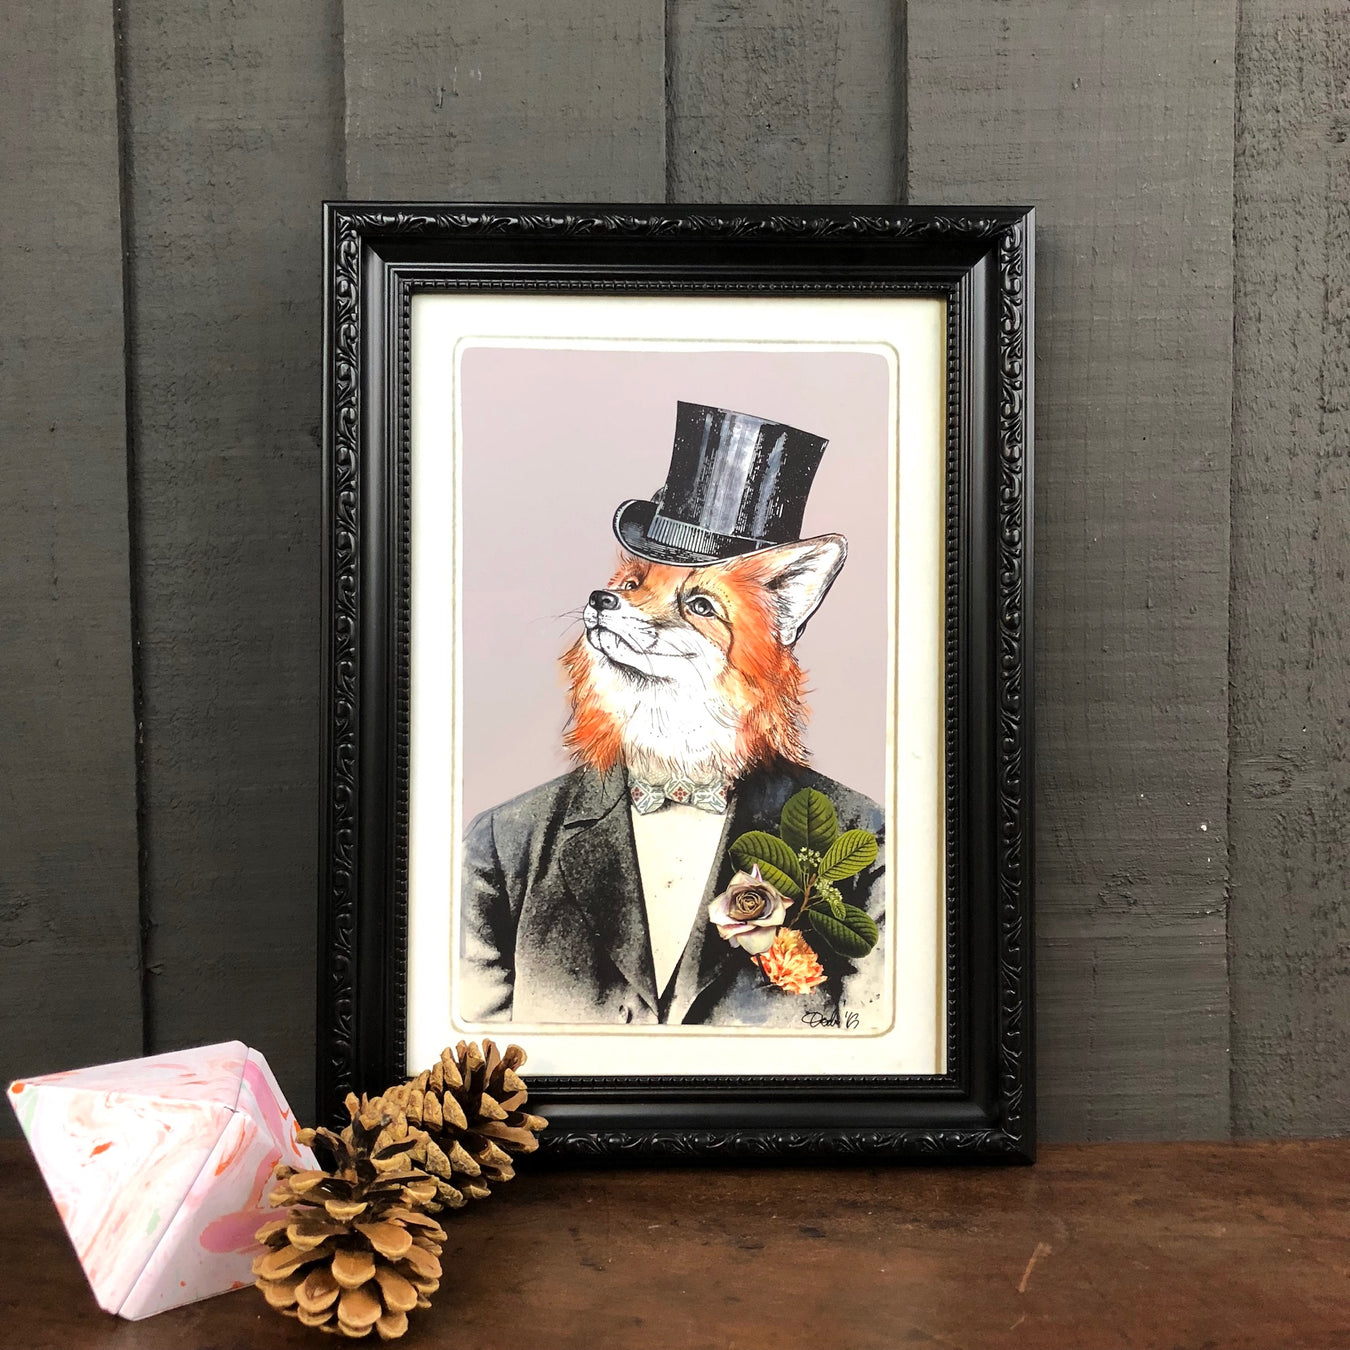 Framed picture of a dapper fox in a tophat